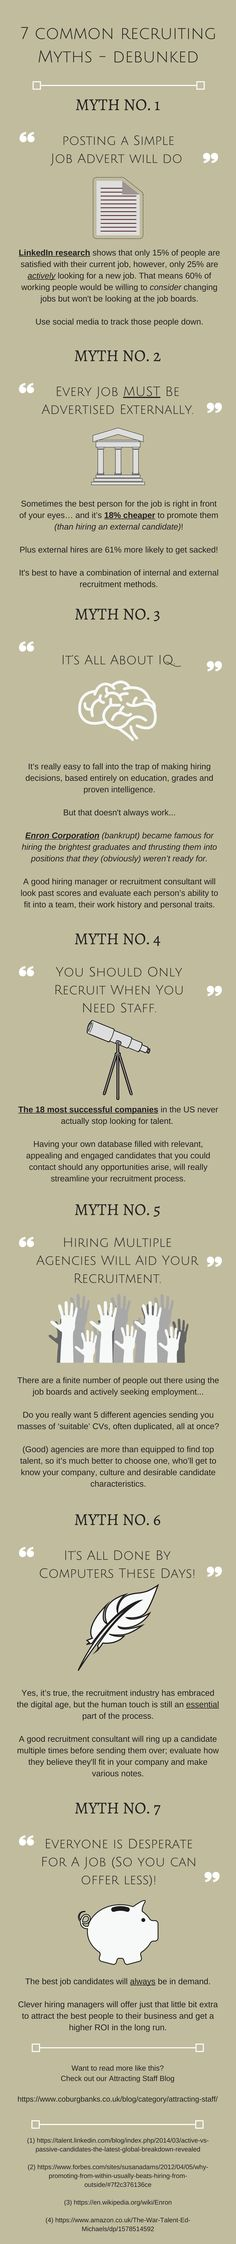 7 Common Recruiting Myths—Debunked [Infographic] – Don't Panic, Just Hire